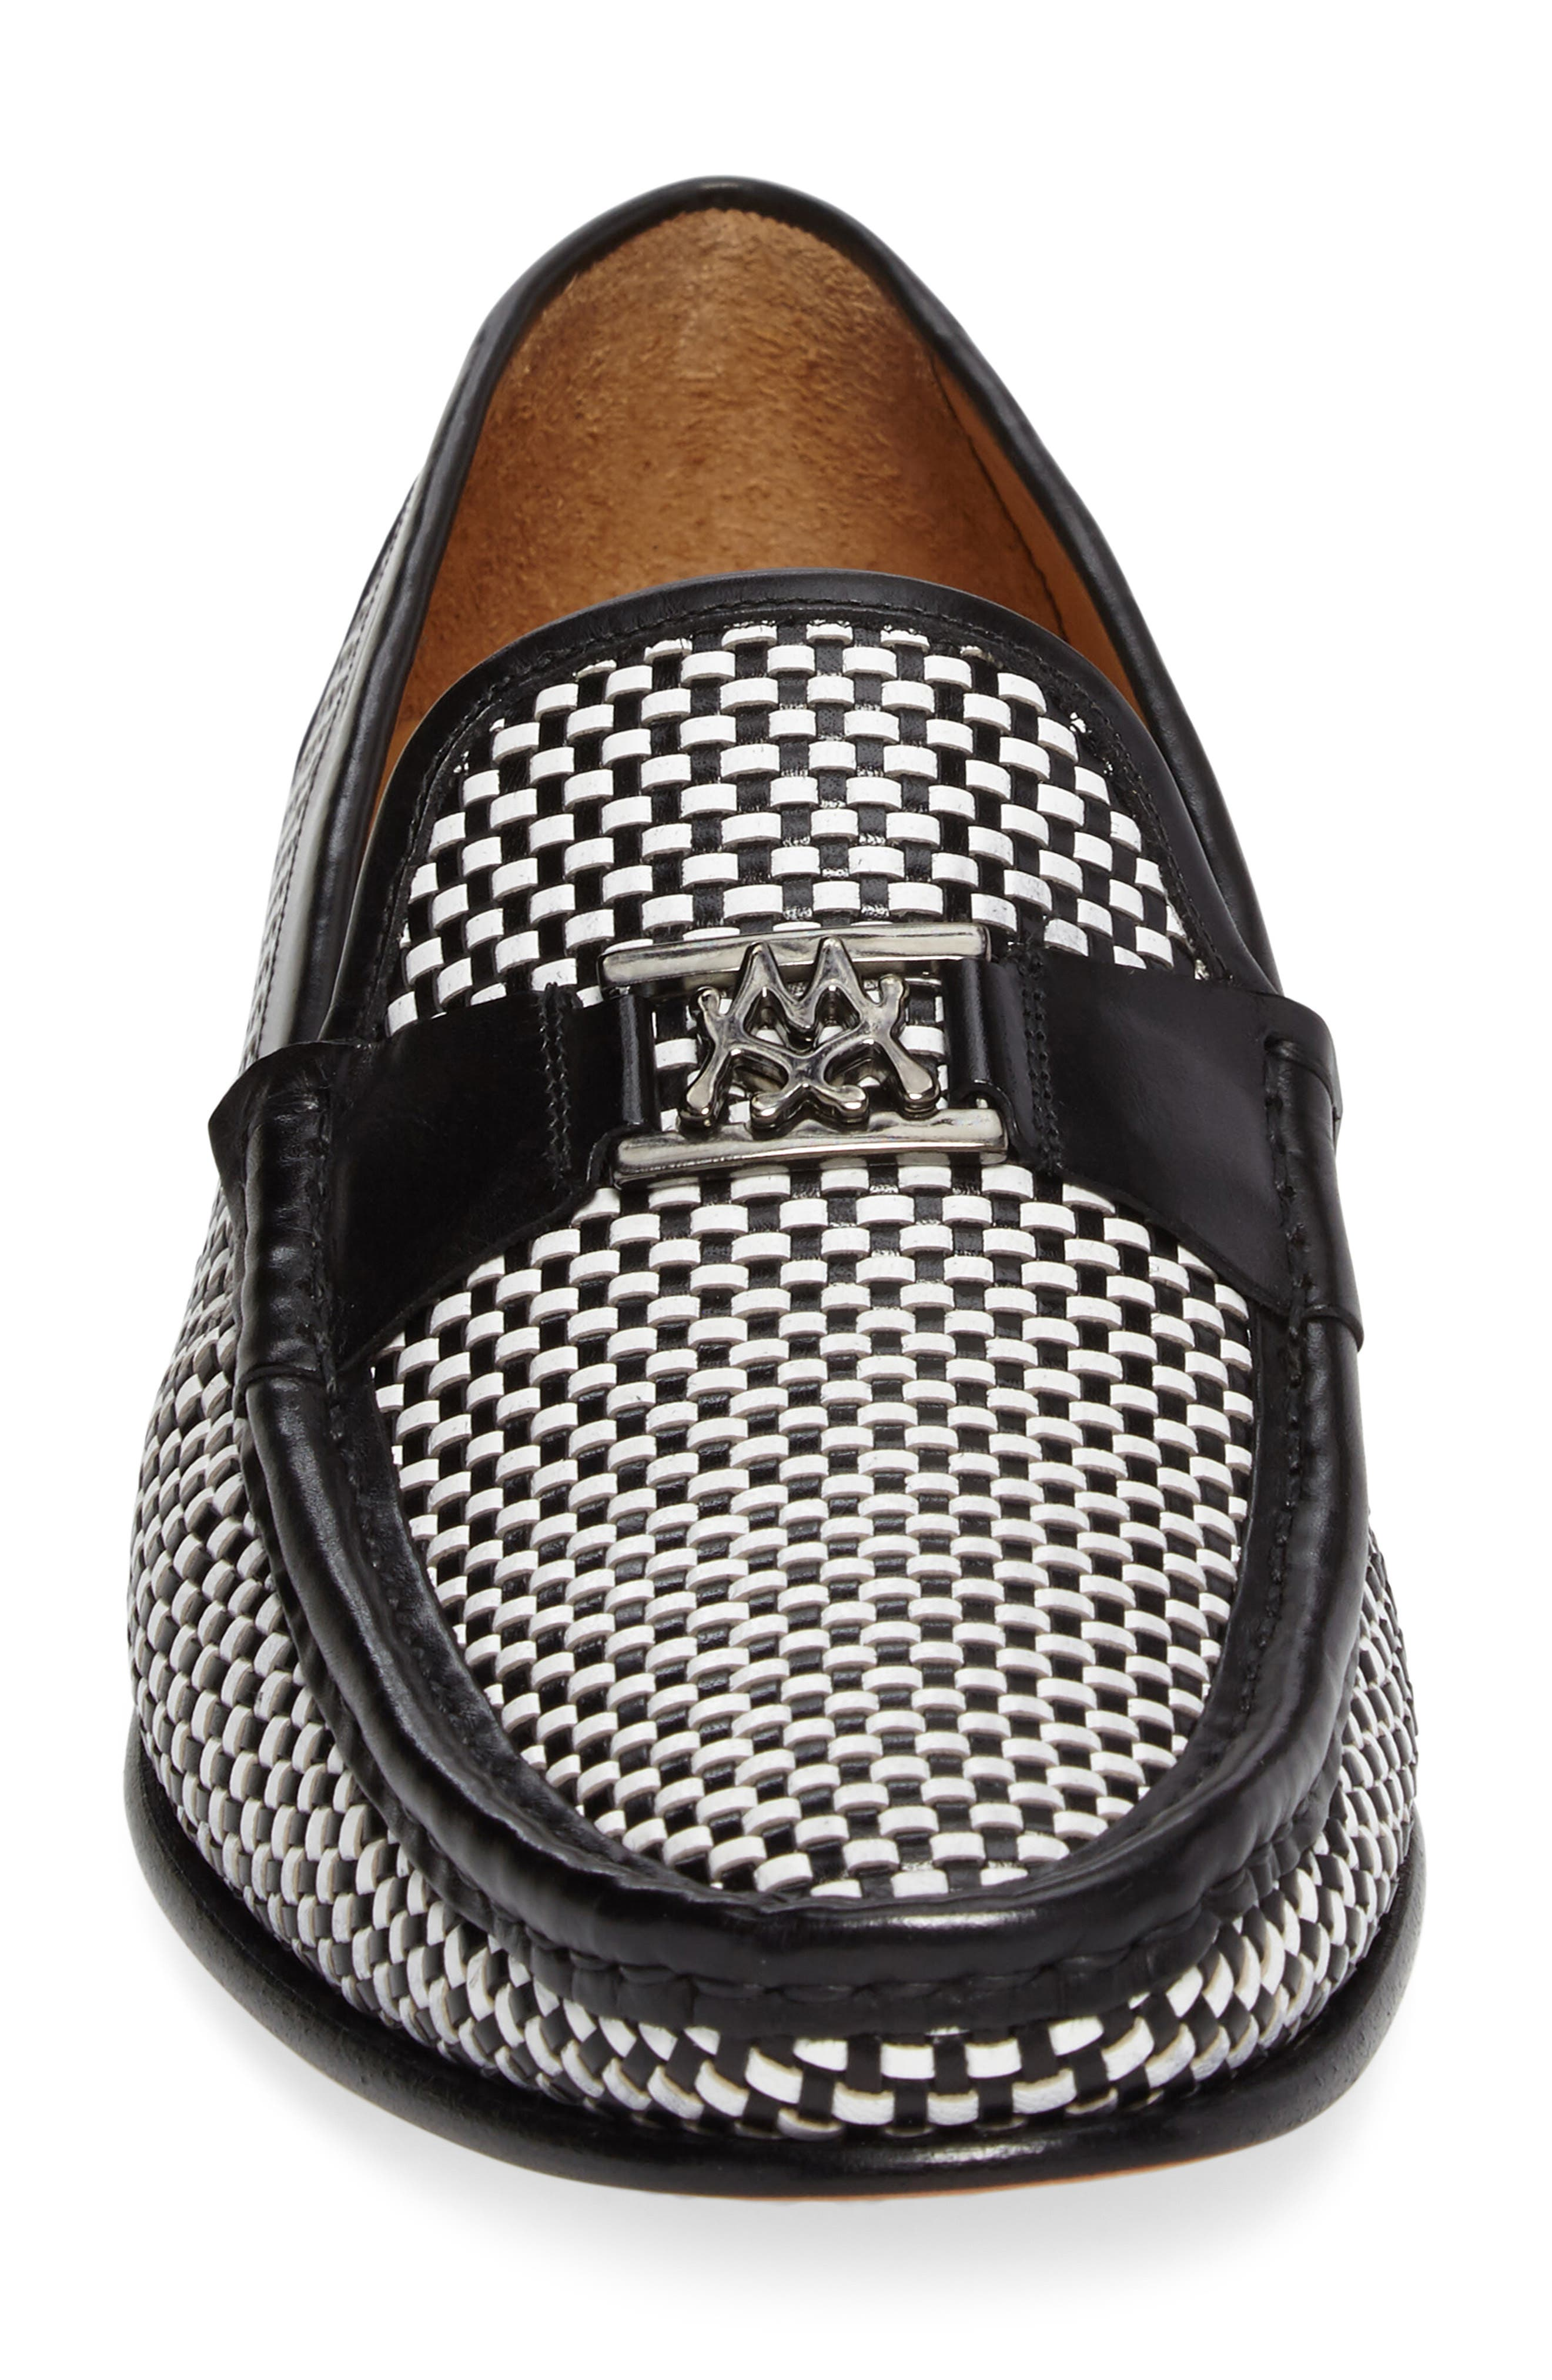 Hallman Woven Loafer,                             Alternate thumbnail 4, color,                             BLACK/ WHITE LEATHER